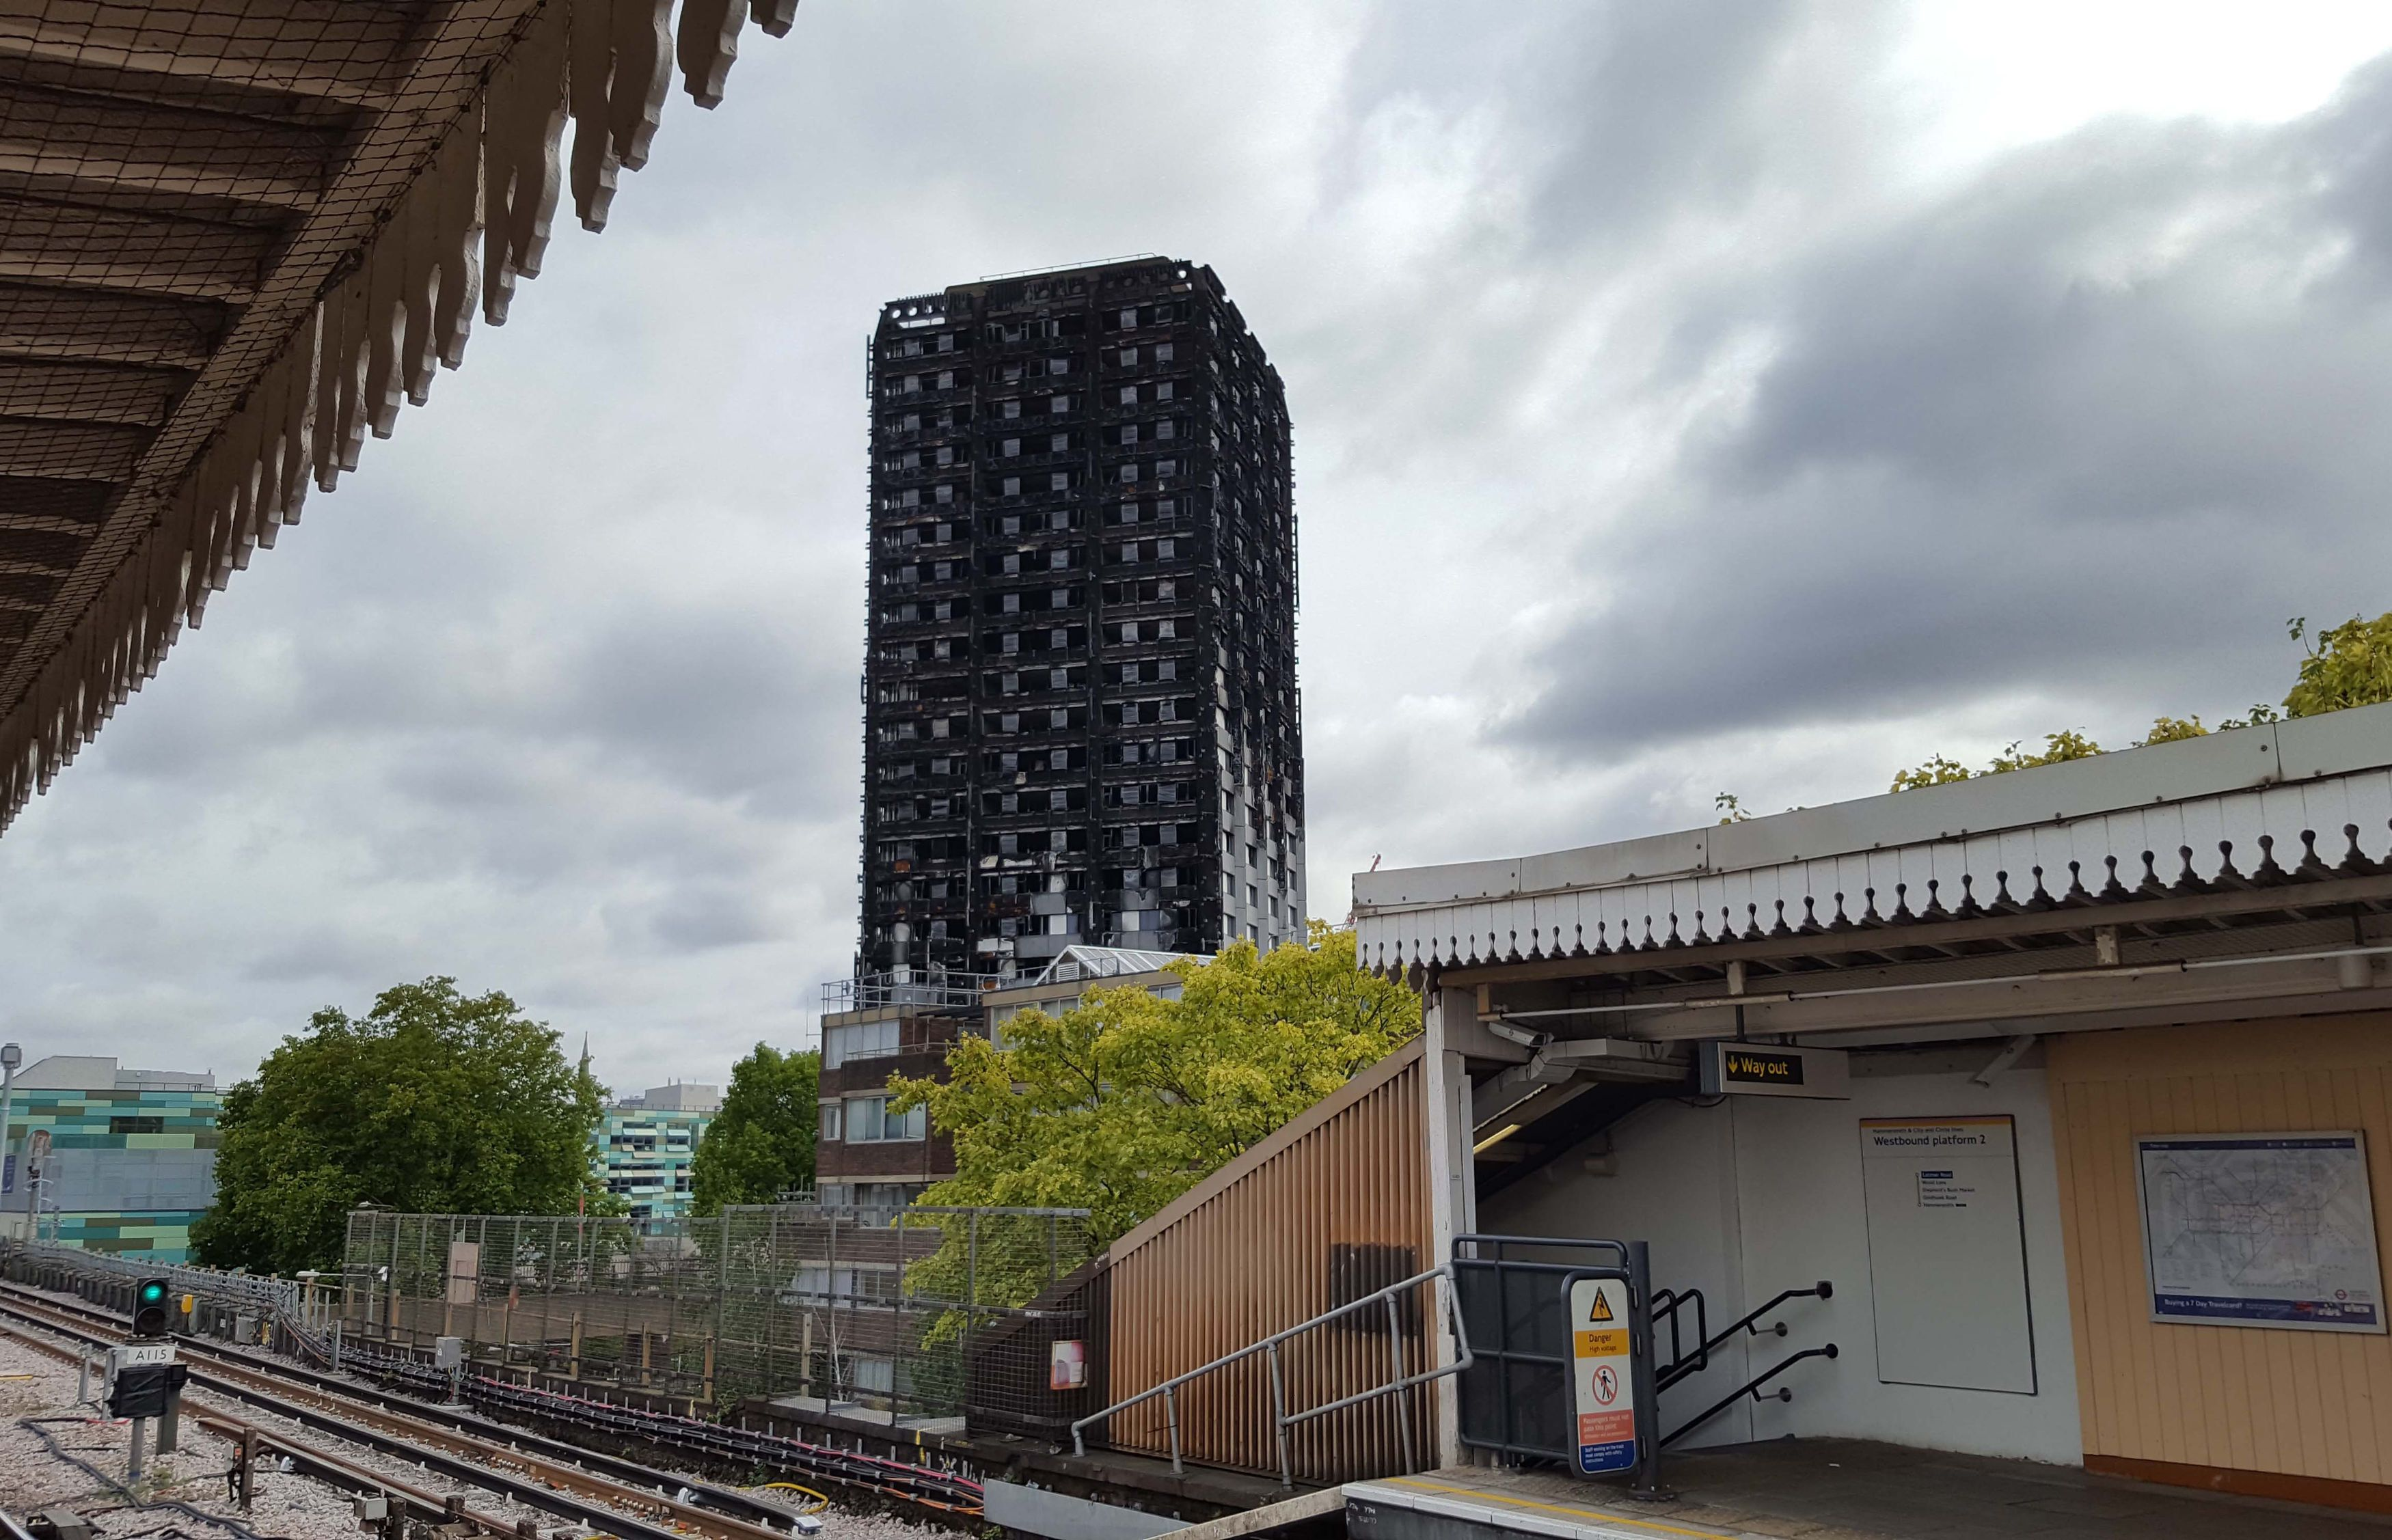 United Kingdom  review after tower block fire sparks controversy